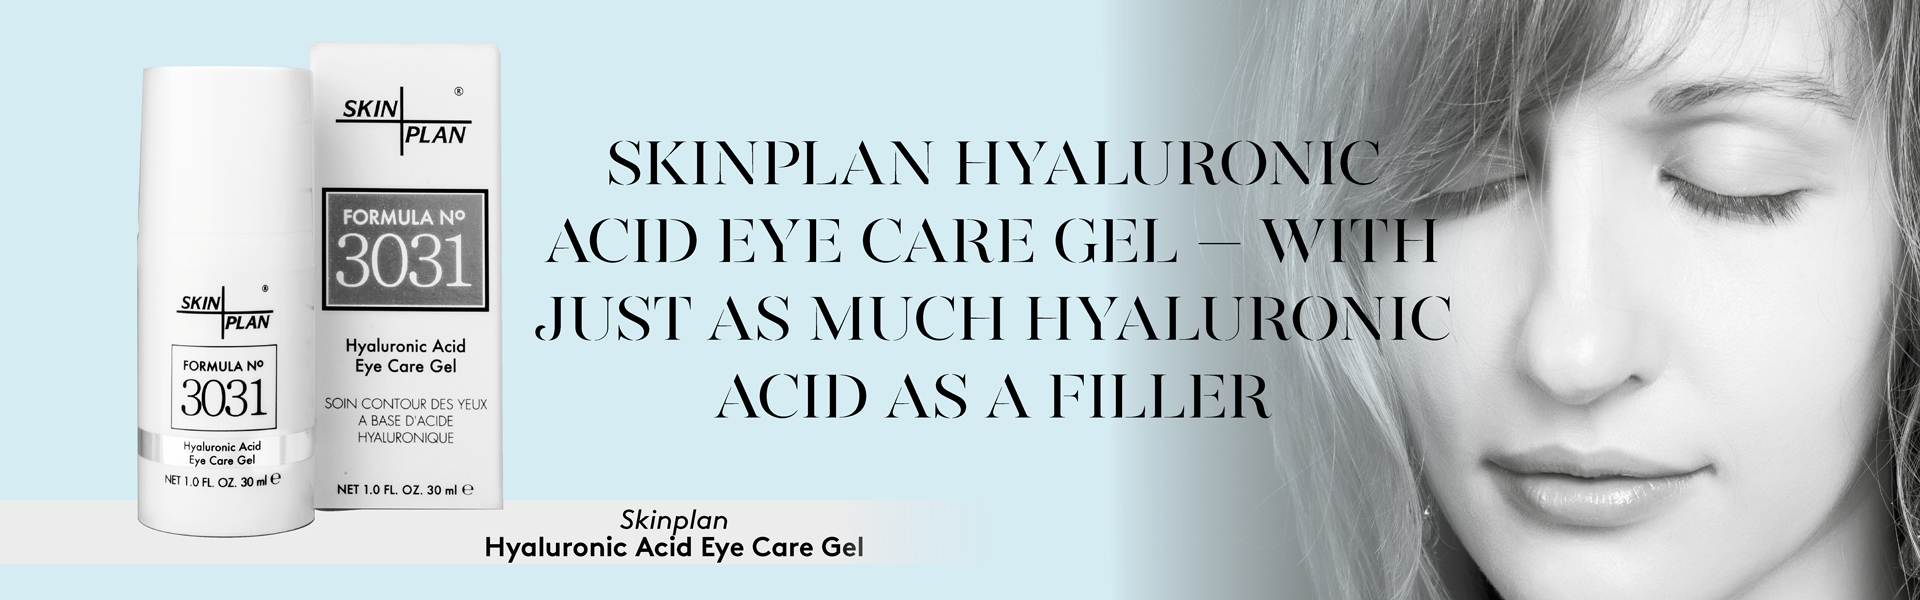 SkinPlan Hyaluronic Acid Eye Care Gel – with just as much hyaluronic acid as a filler